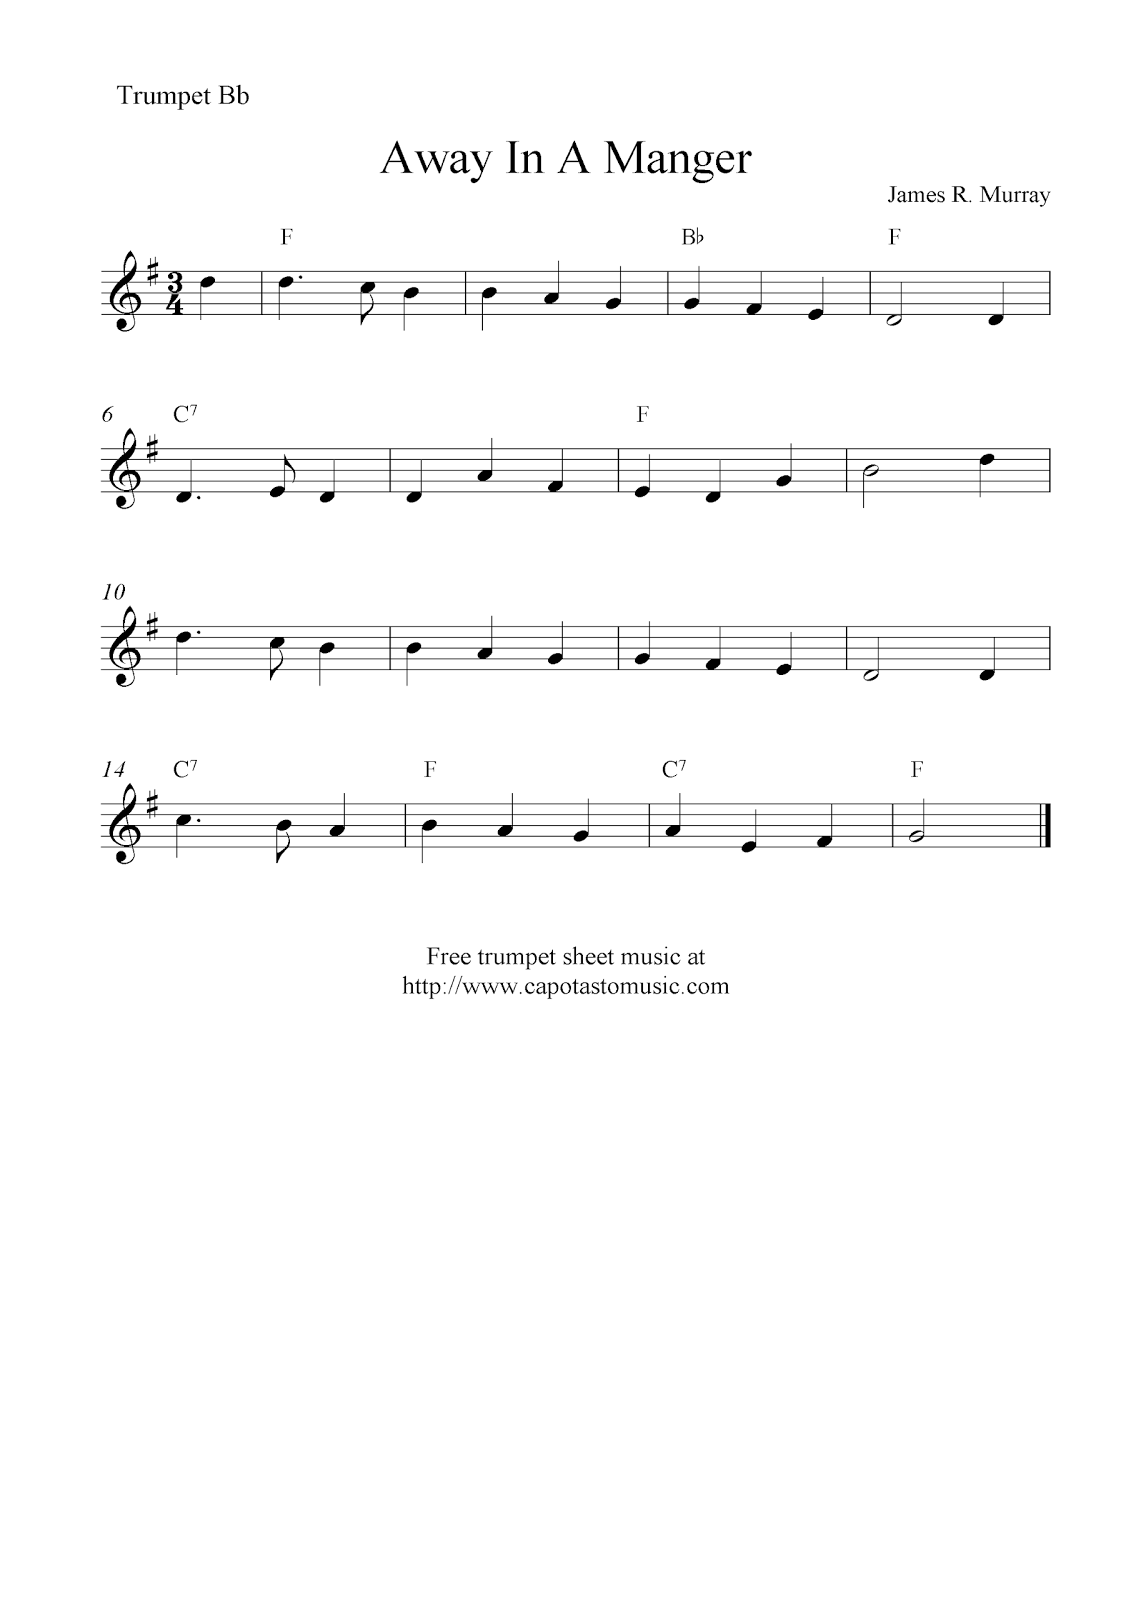 Away In A Manger, free Christmas trumpet sheet music notes